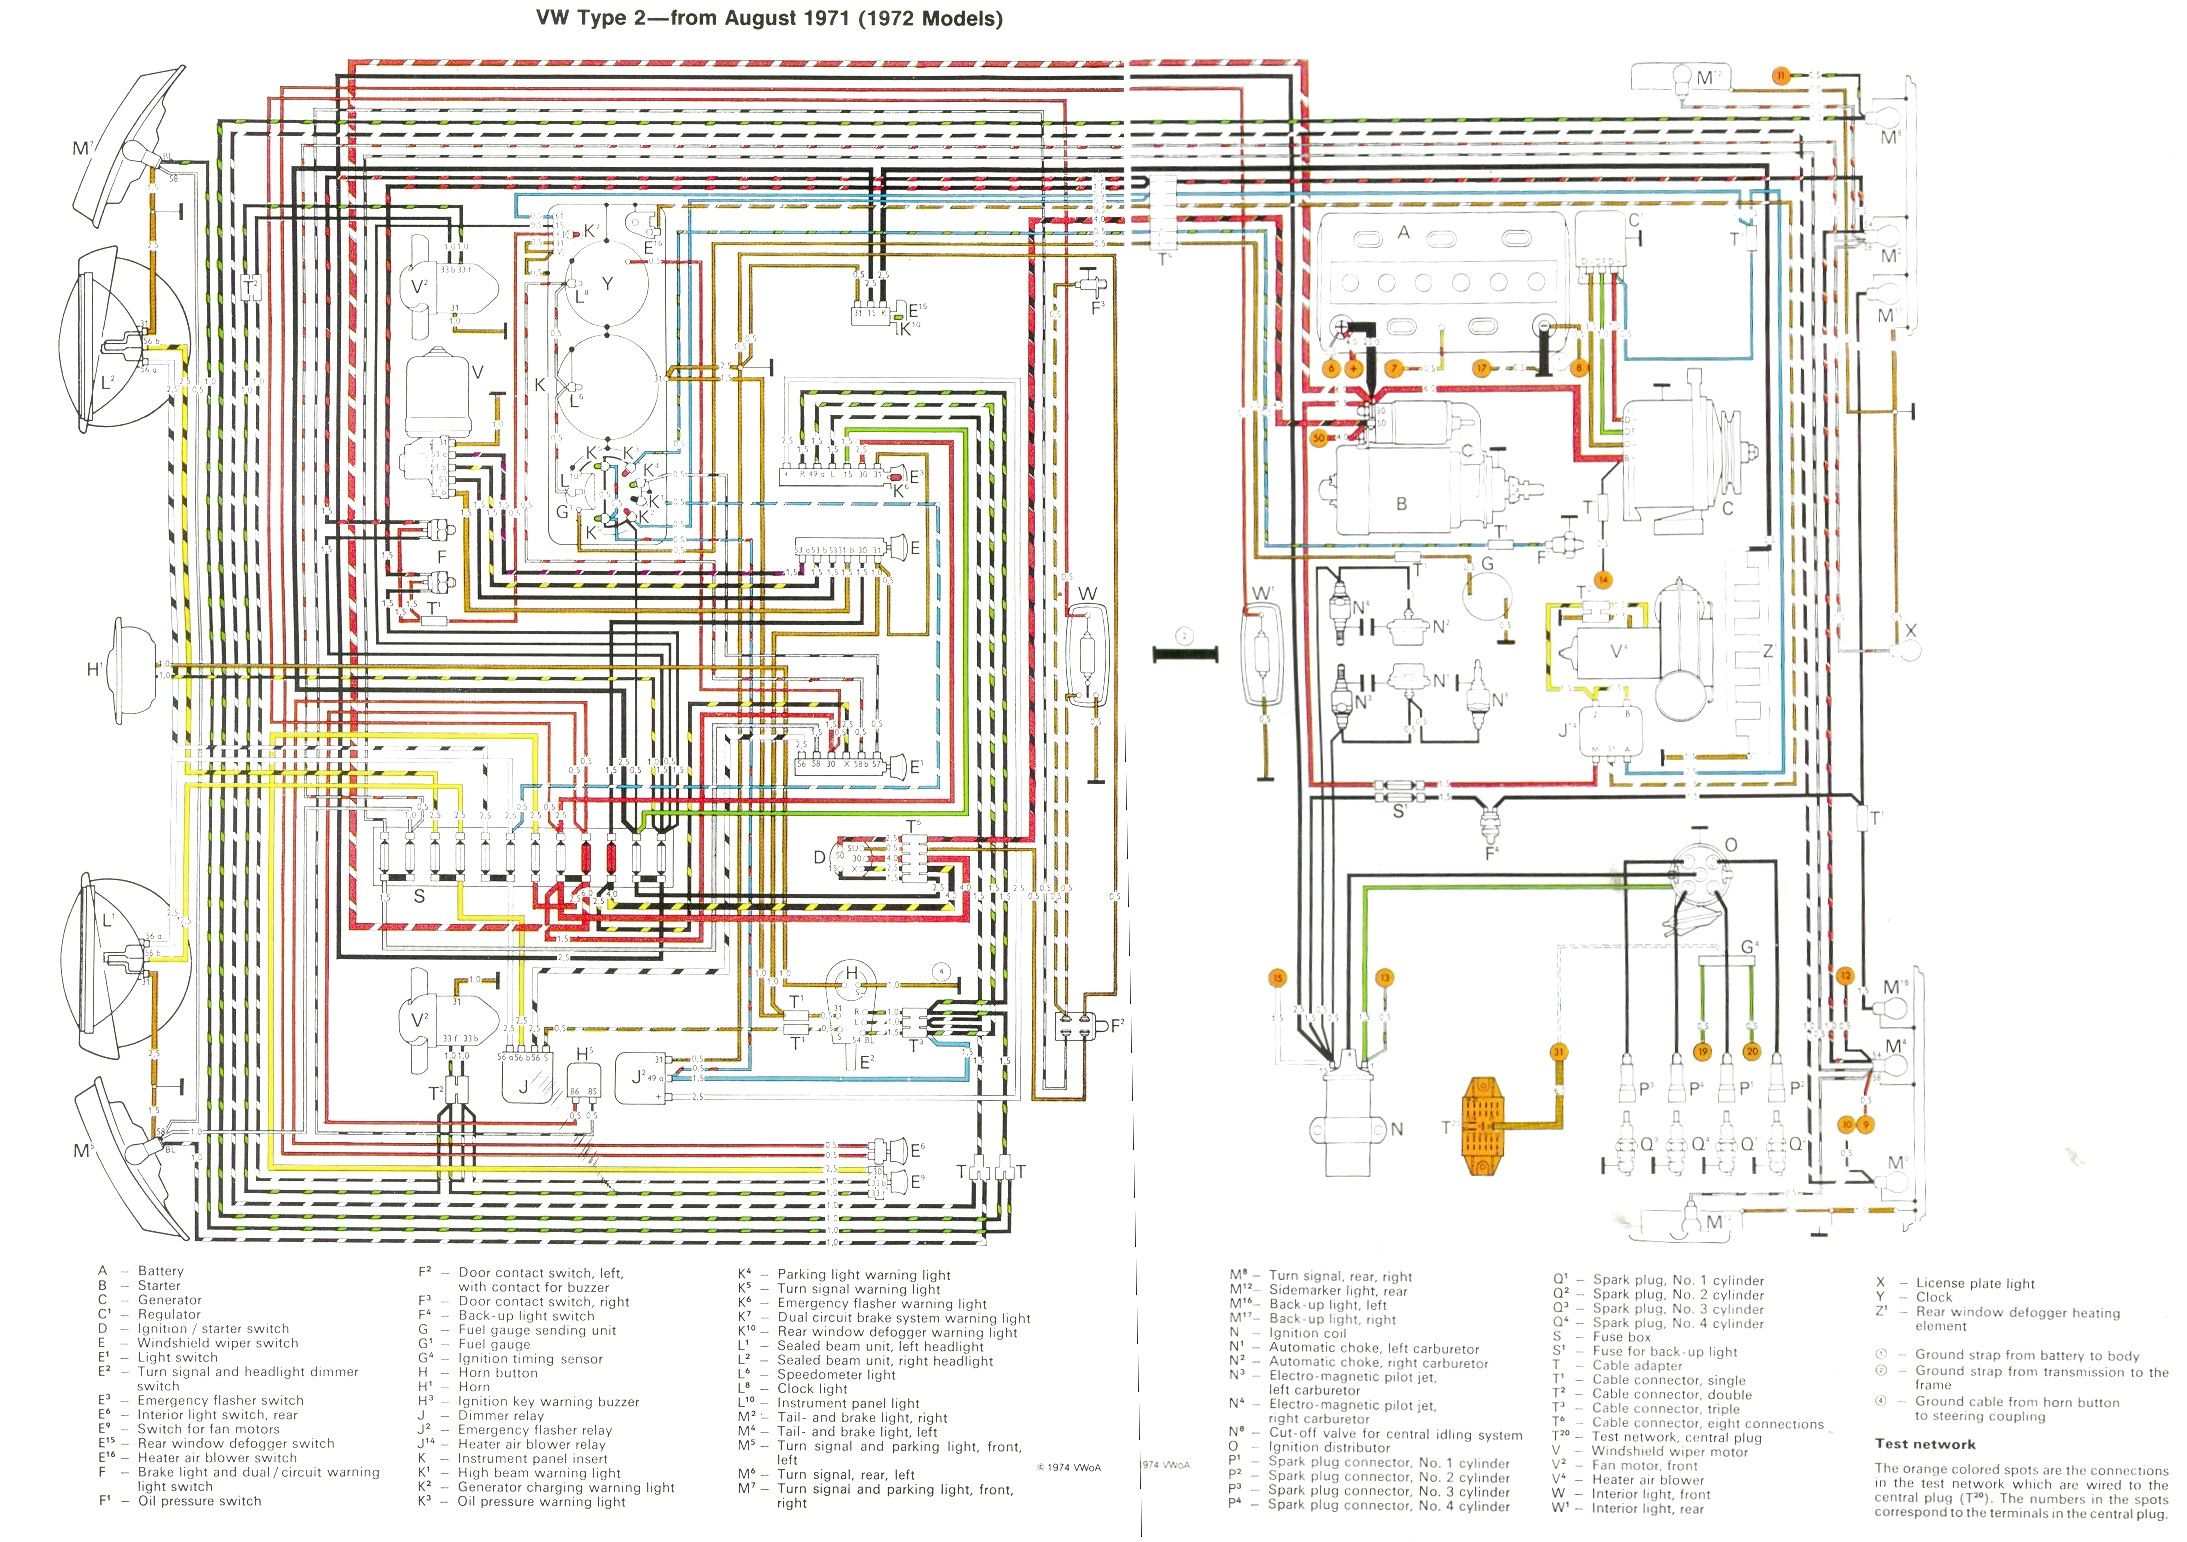 bus 71 72 baywindow fusebox layout vw bus wiring diagram at fashall.co